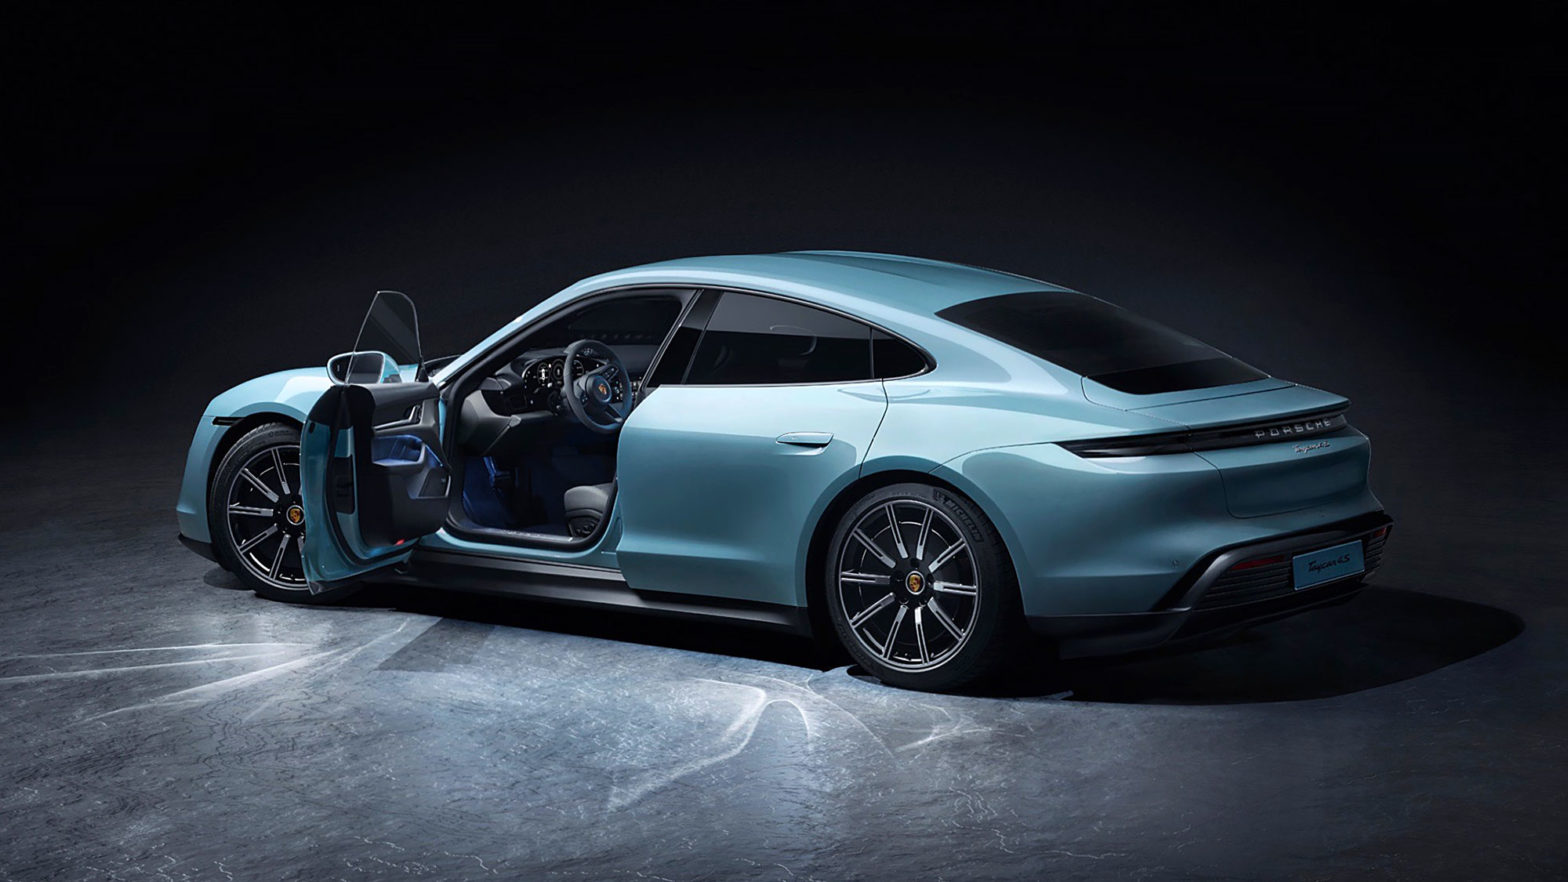 2020 Porsche Taycan 4S Electric Vehicle